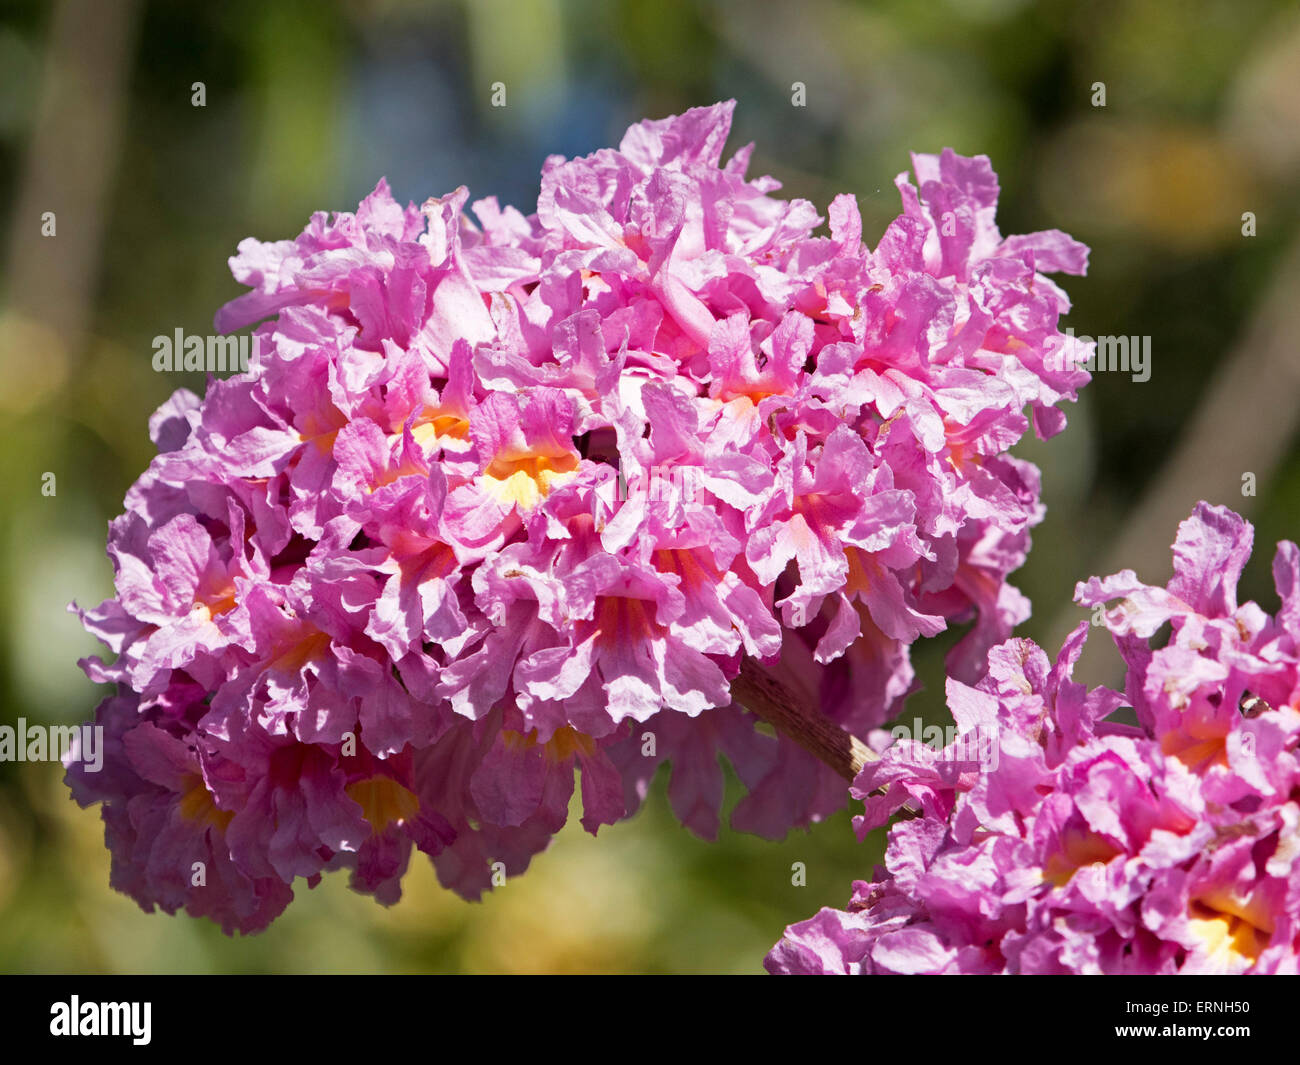 Large cluster of bright pink flowers of tabebuia impetiginosa pink large cluster of bright pink flowers of tabebuia impetiginosa pink trumpet tree against light green background in australia mightylinksfo